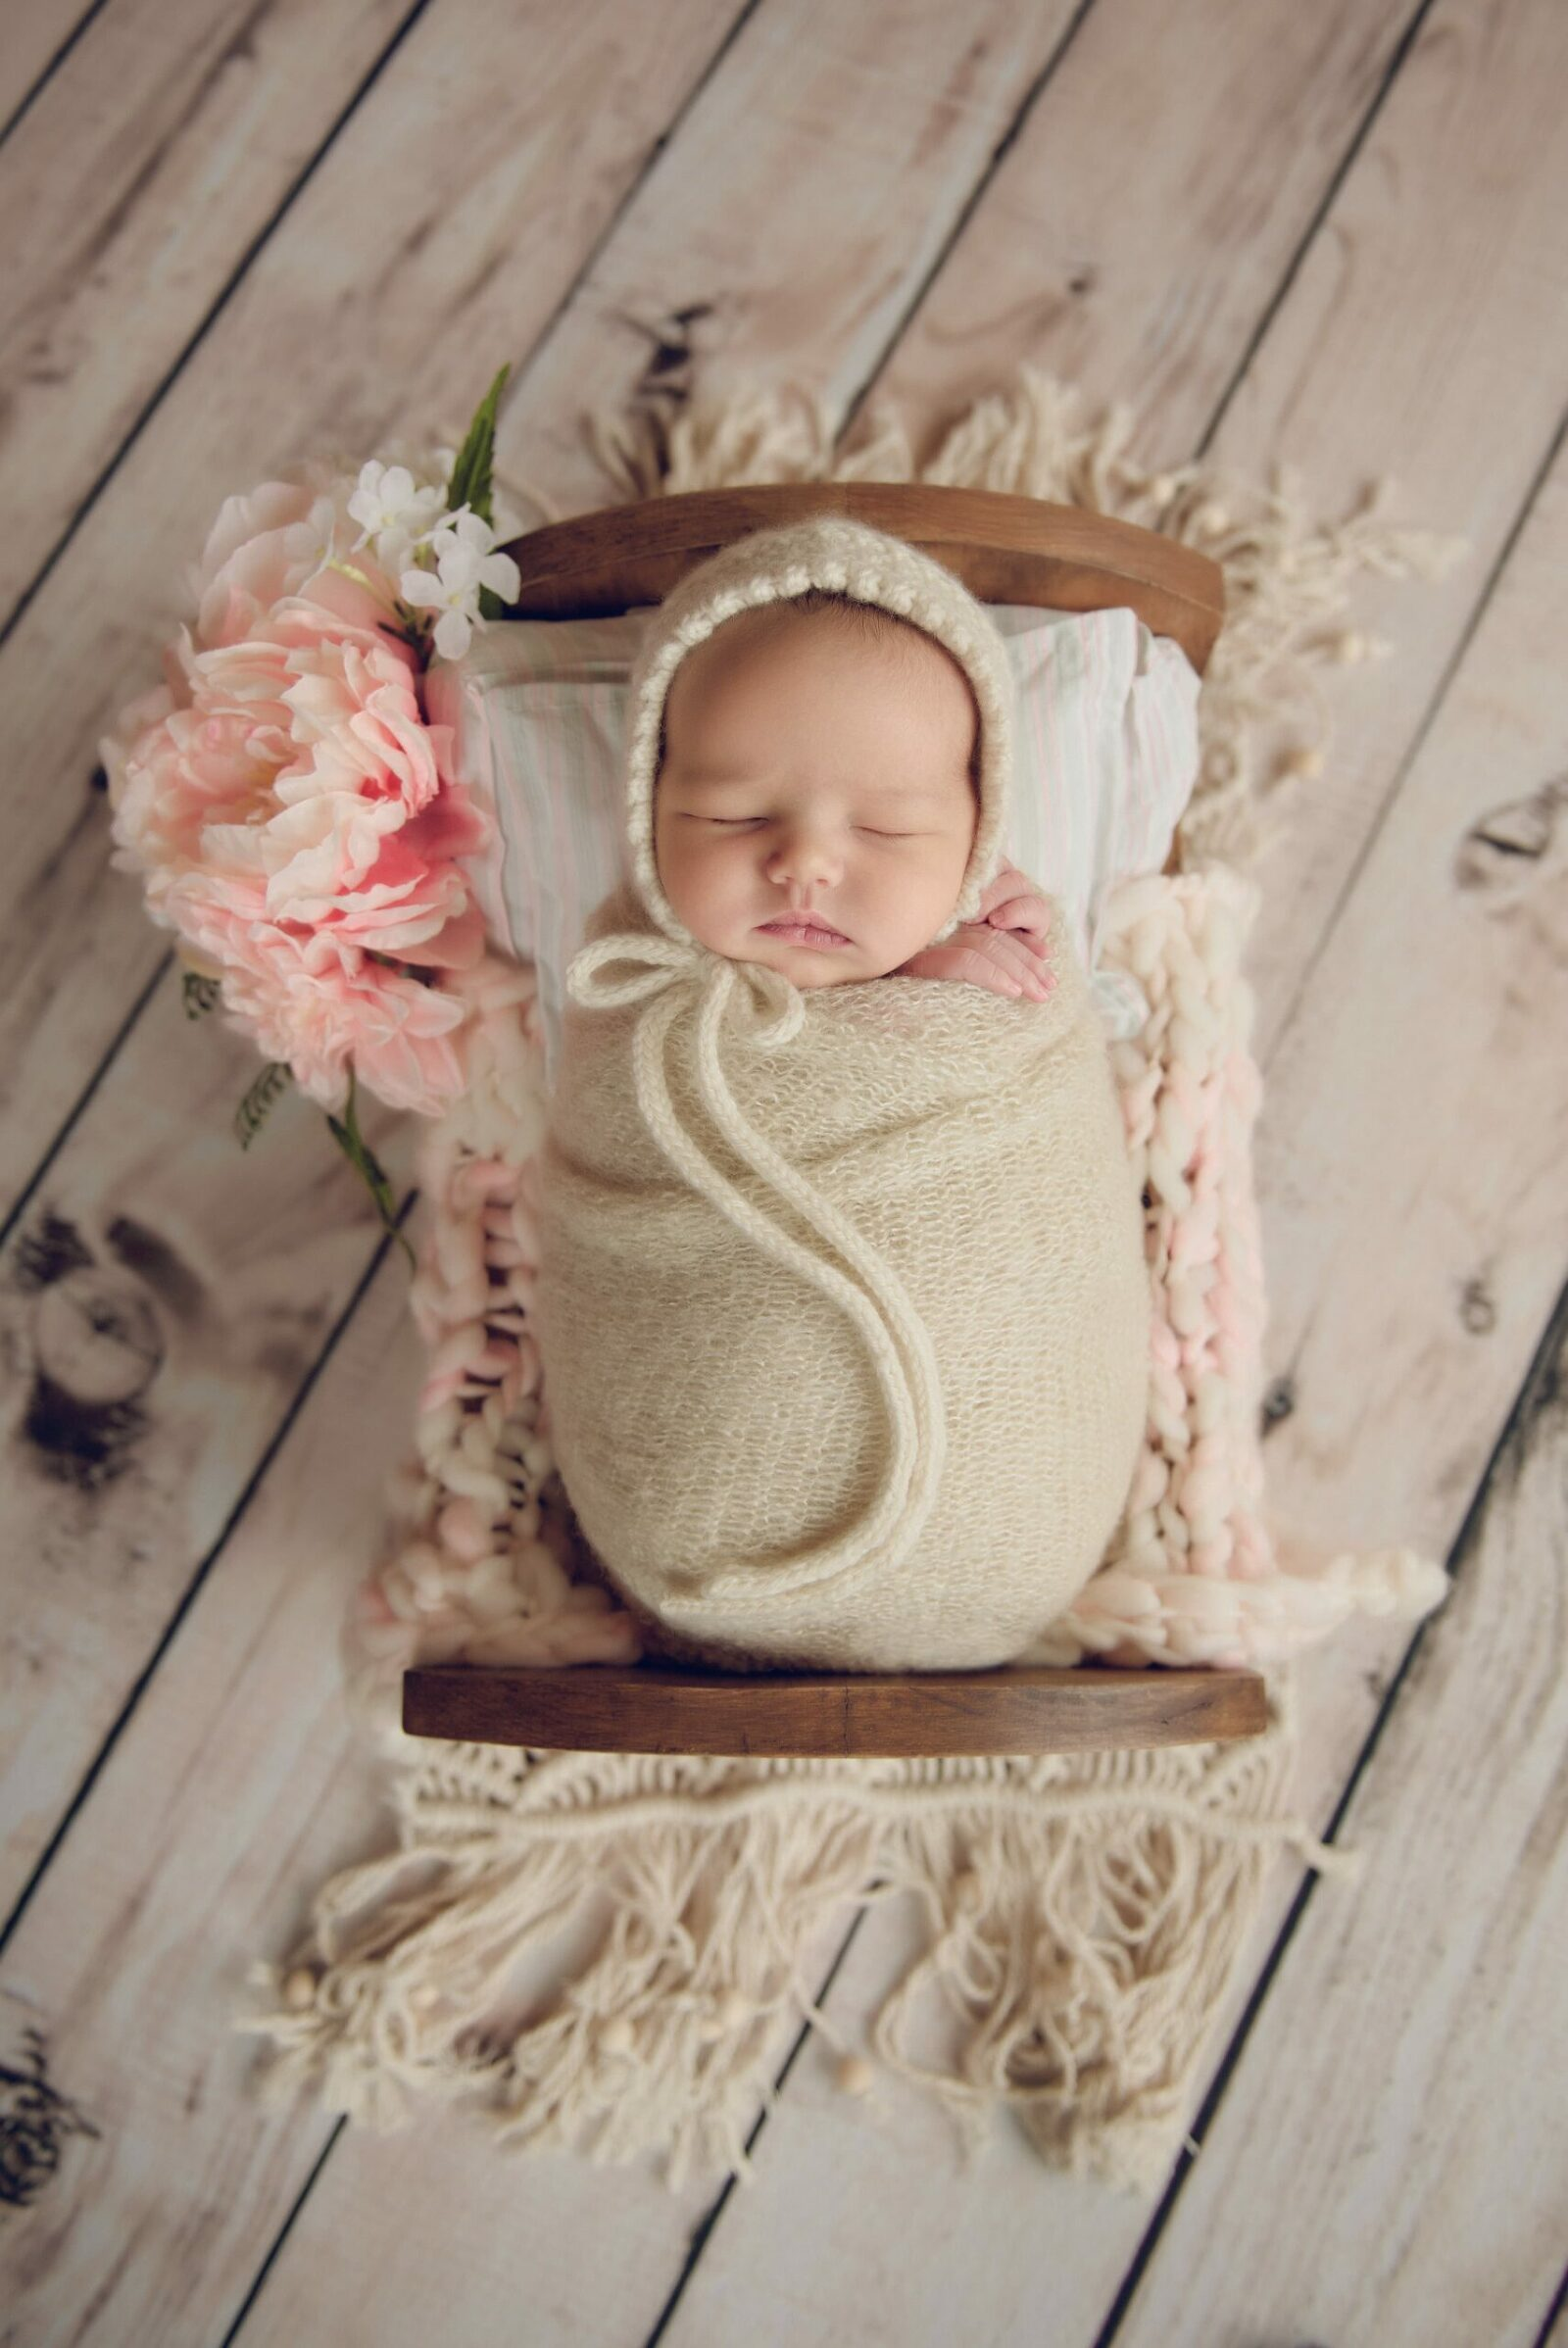 newborn baby girl in cradle with pink flowers wearing a ivory bonnet